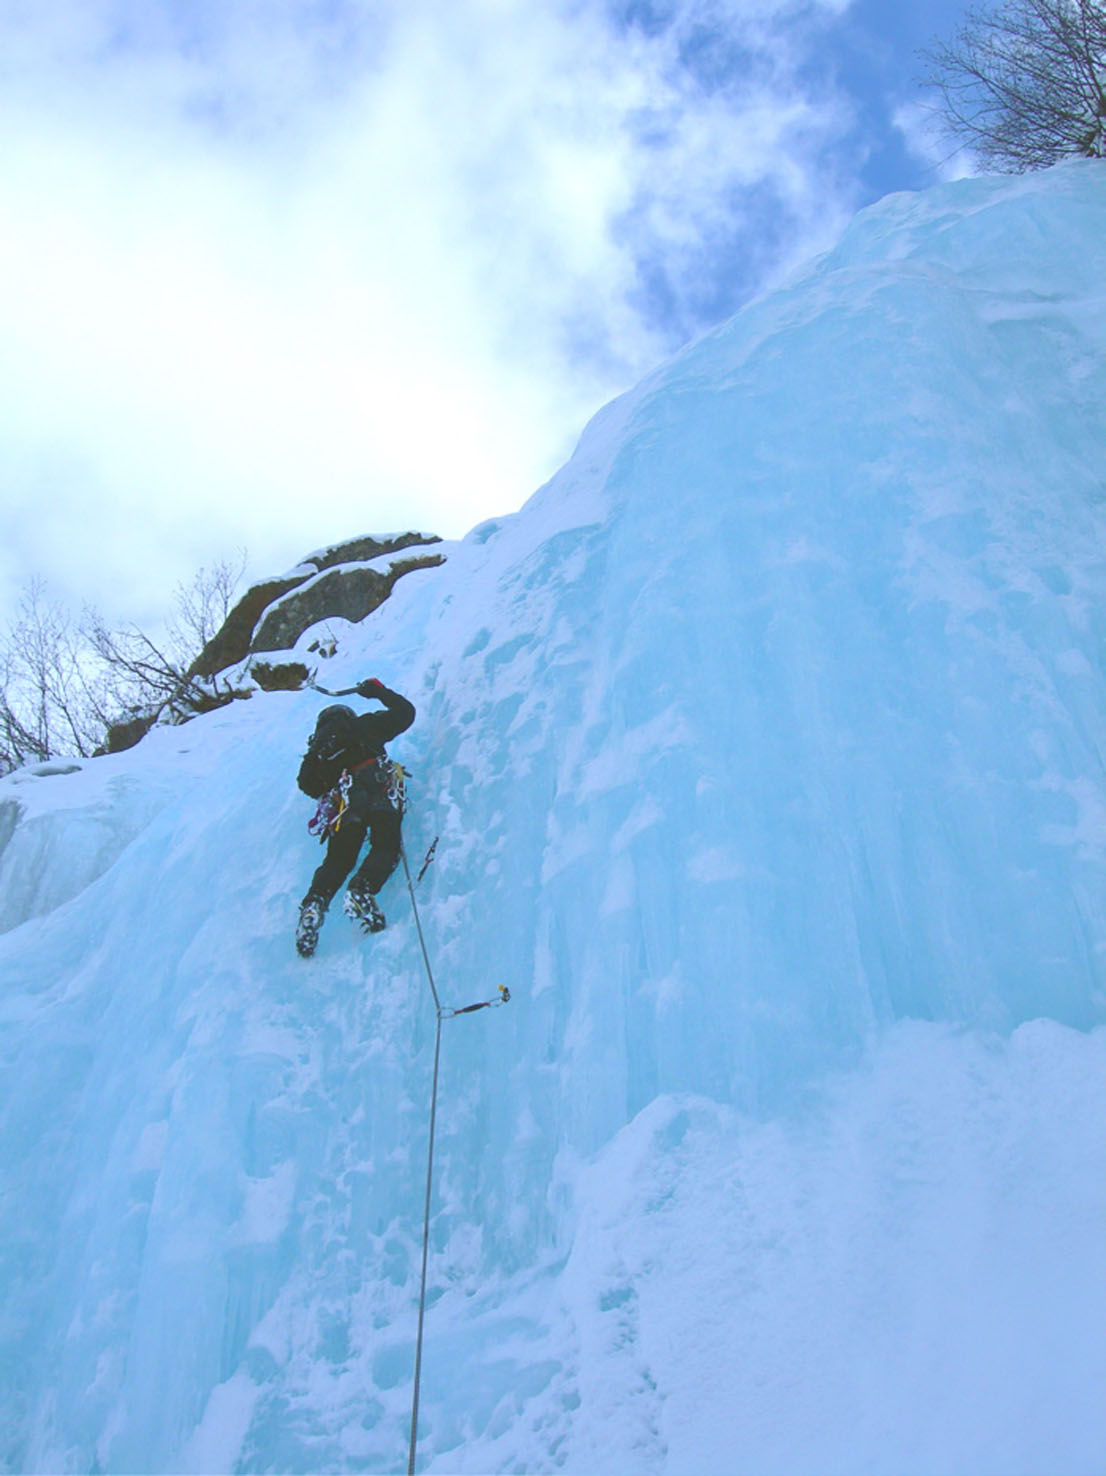 Ice Climbing Beginner To Advanced Level Courses